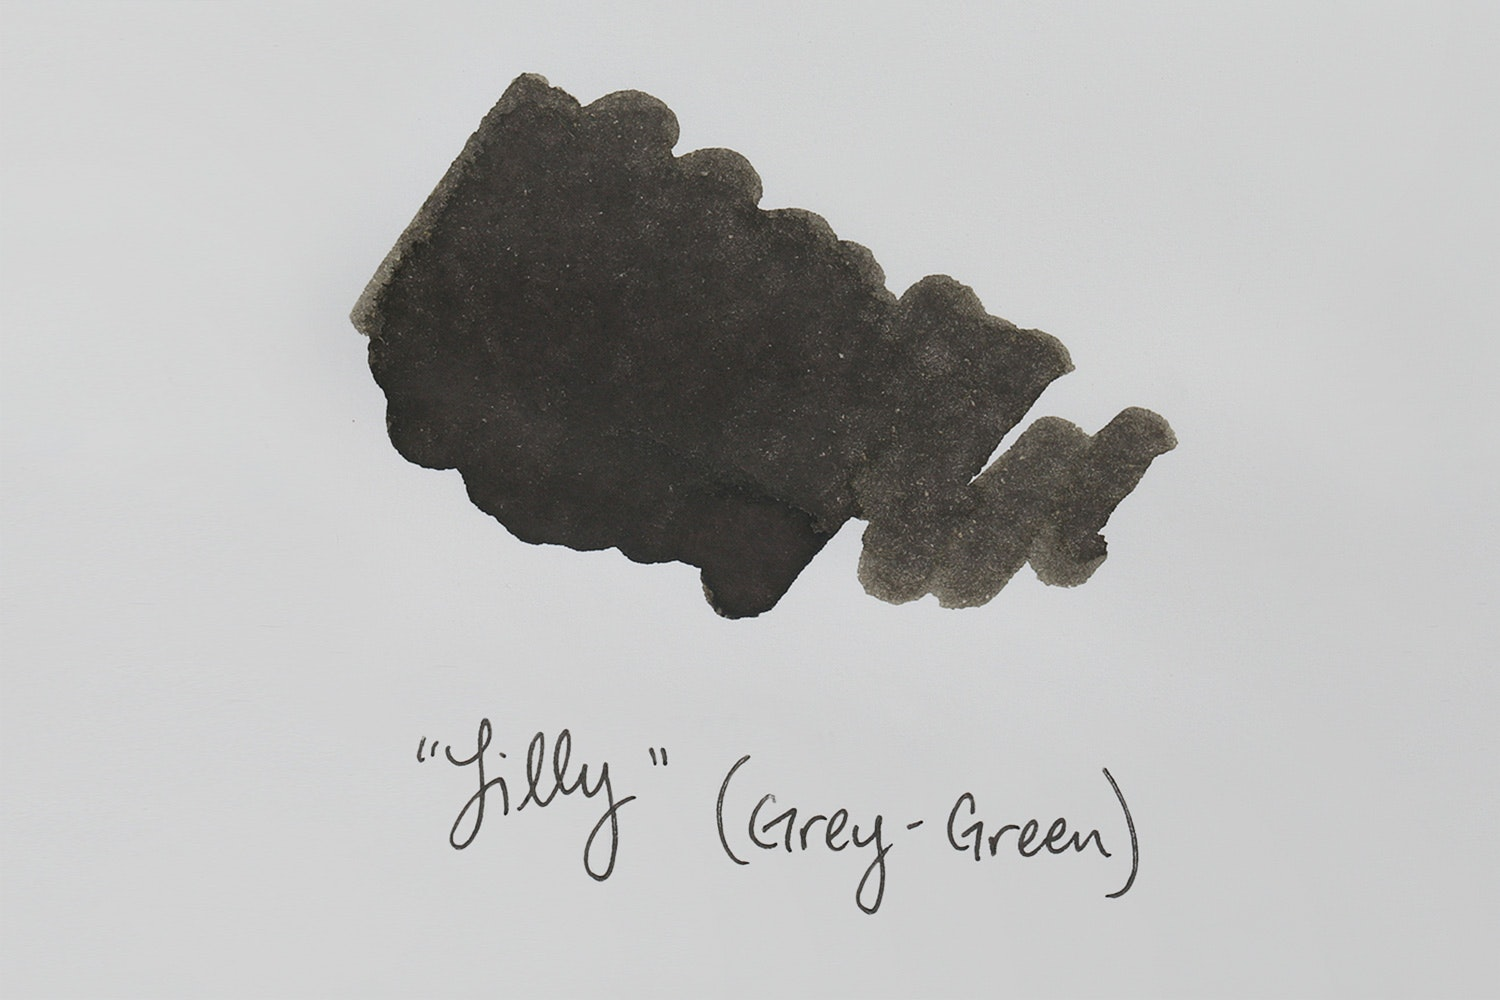 Lilly (Grey-Green)